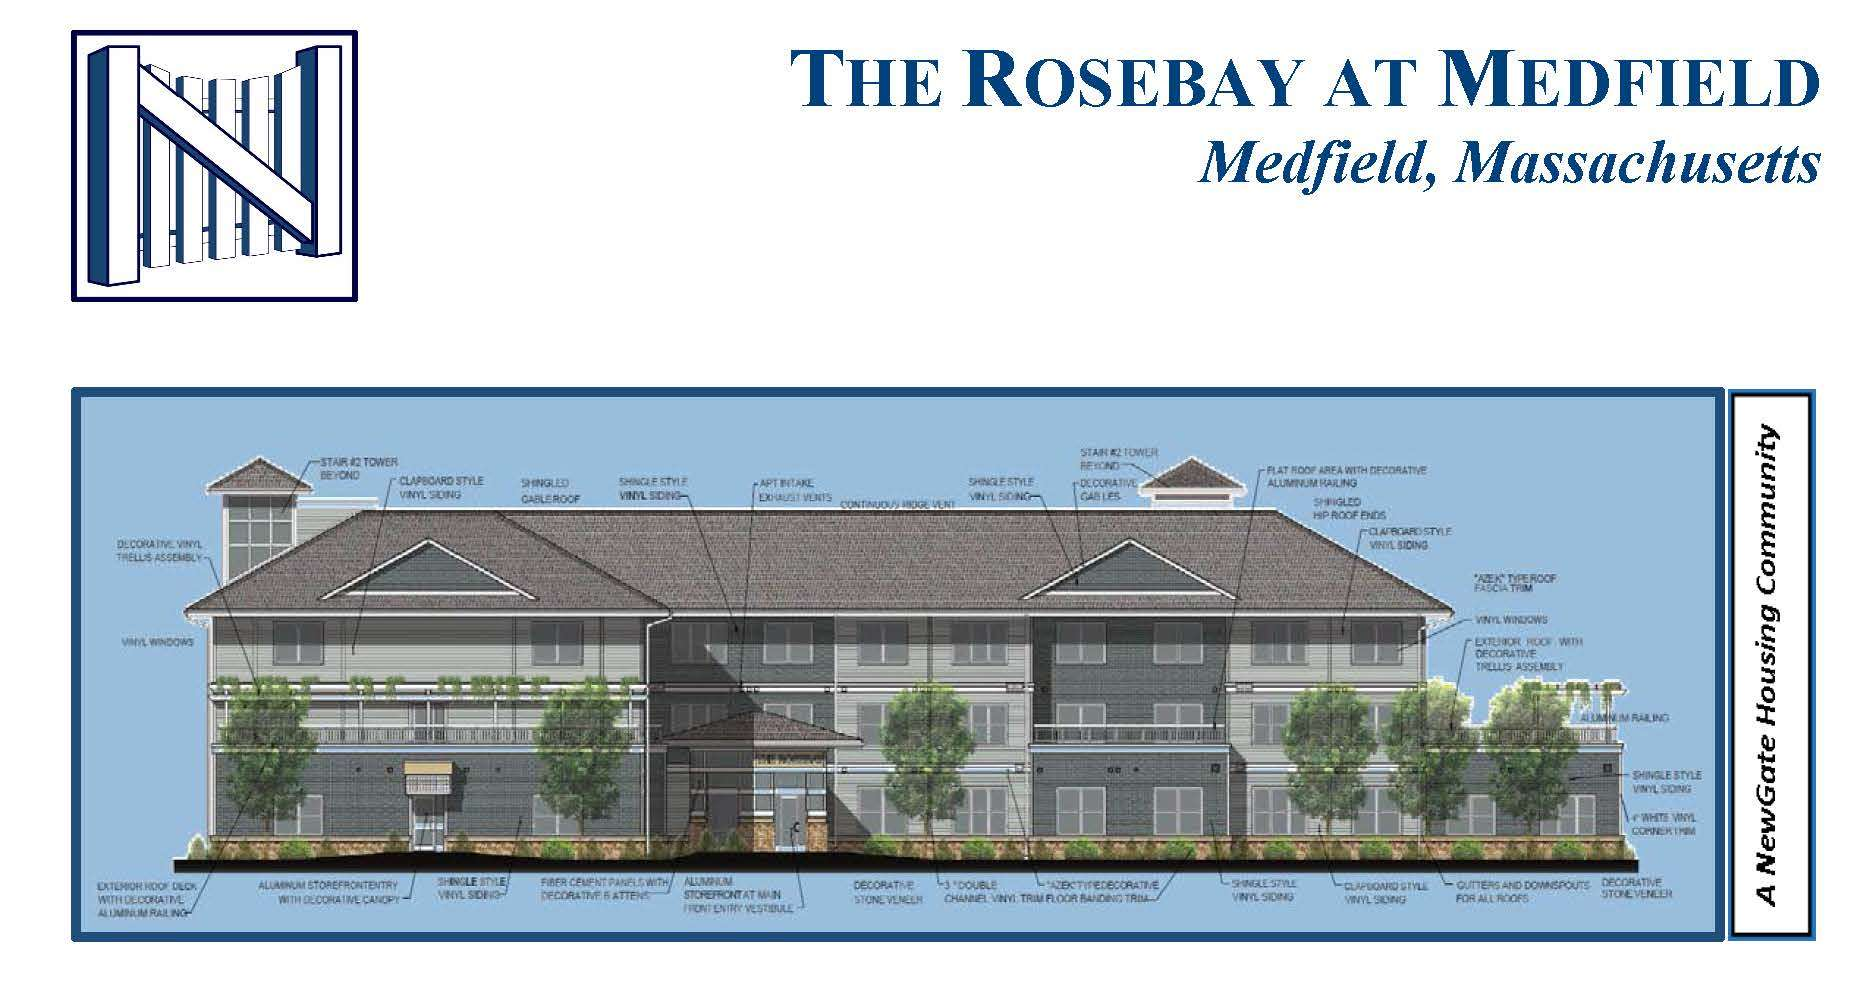 Rosebay cover picture Opens in new window